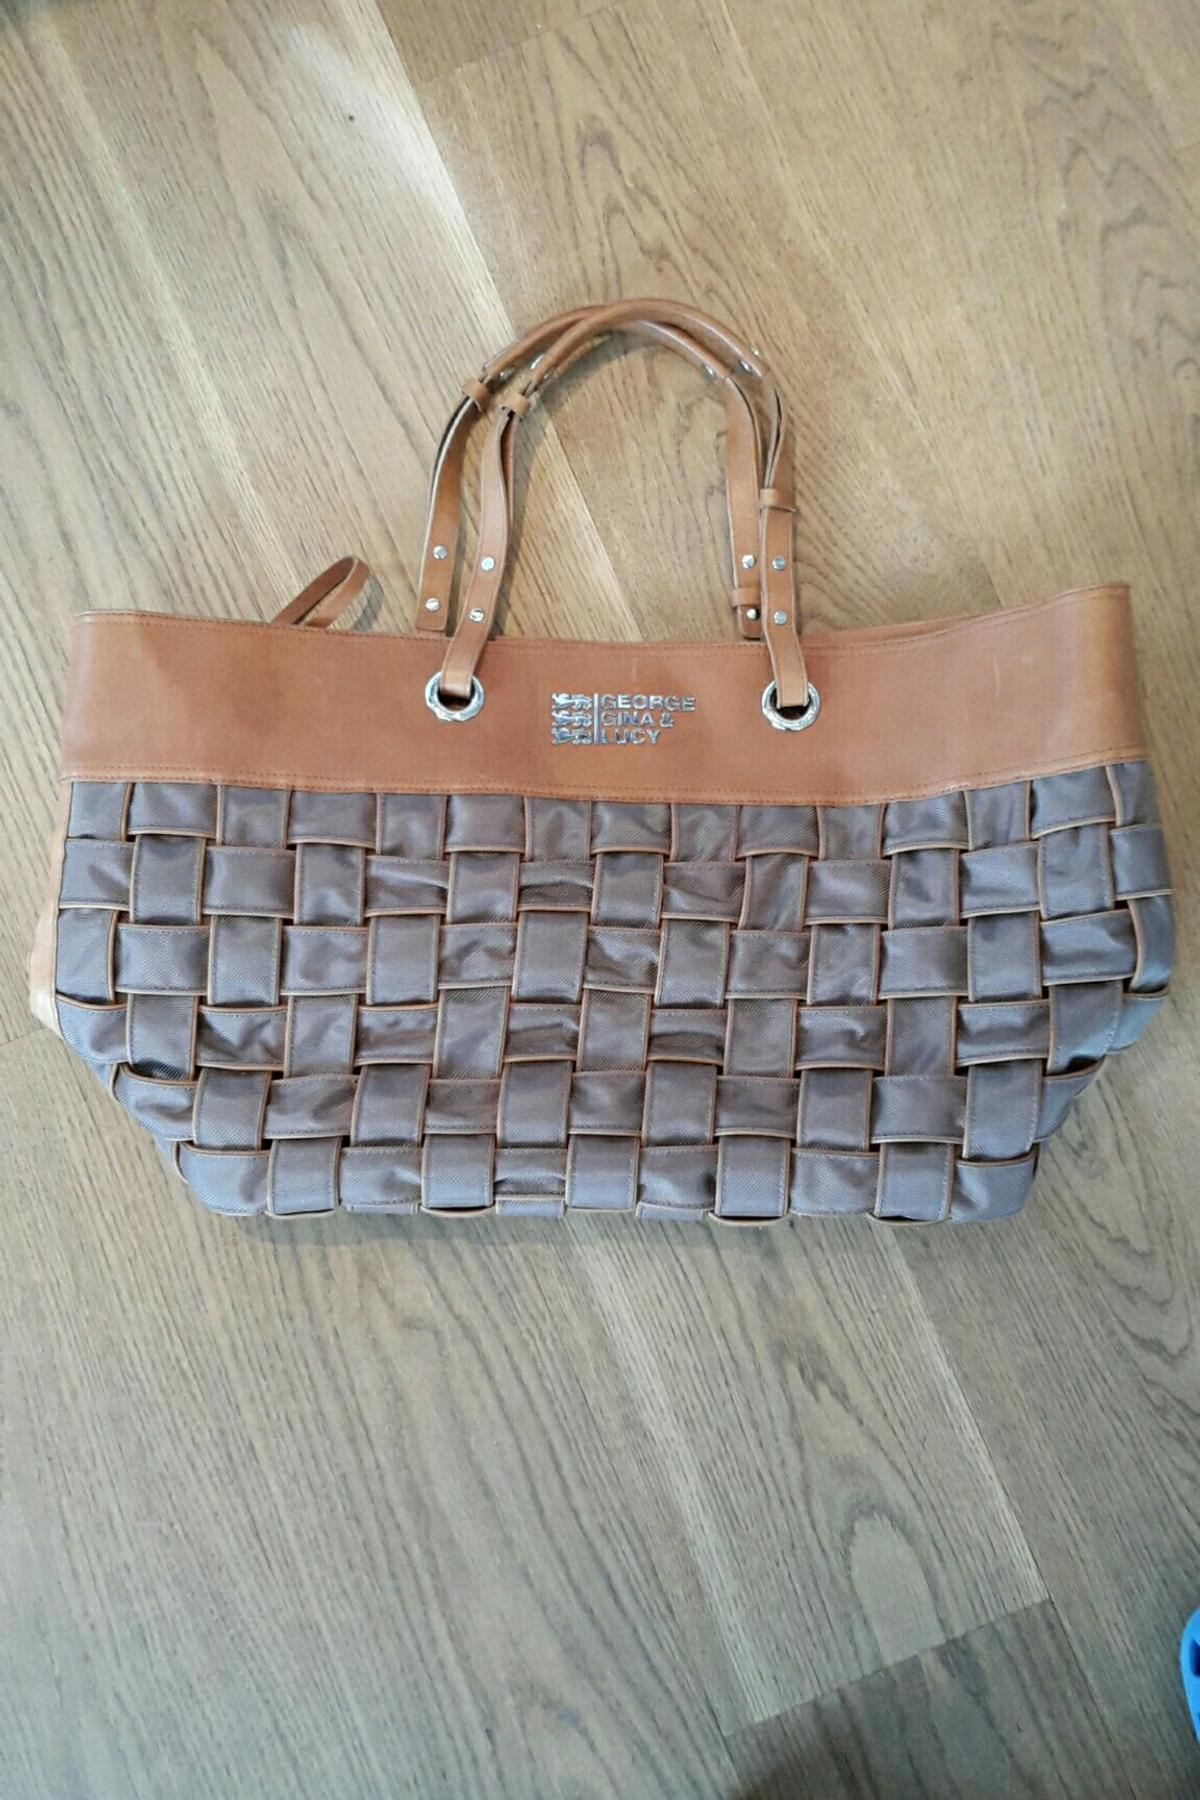 d6deadcb5909d George Gina Lucy Shopper Tasche groß in 91522 Ansbach for €70.00 for ...